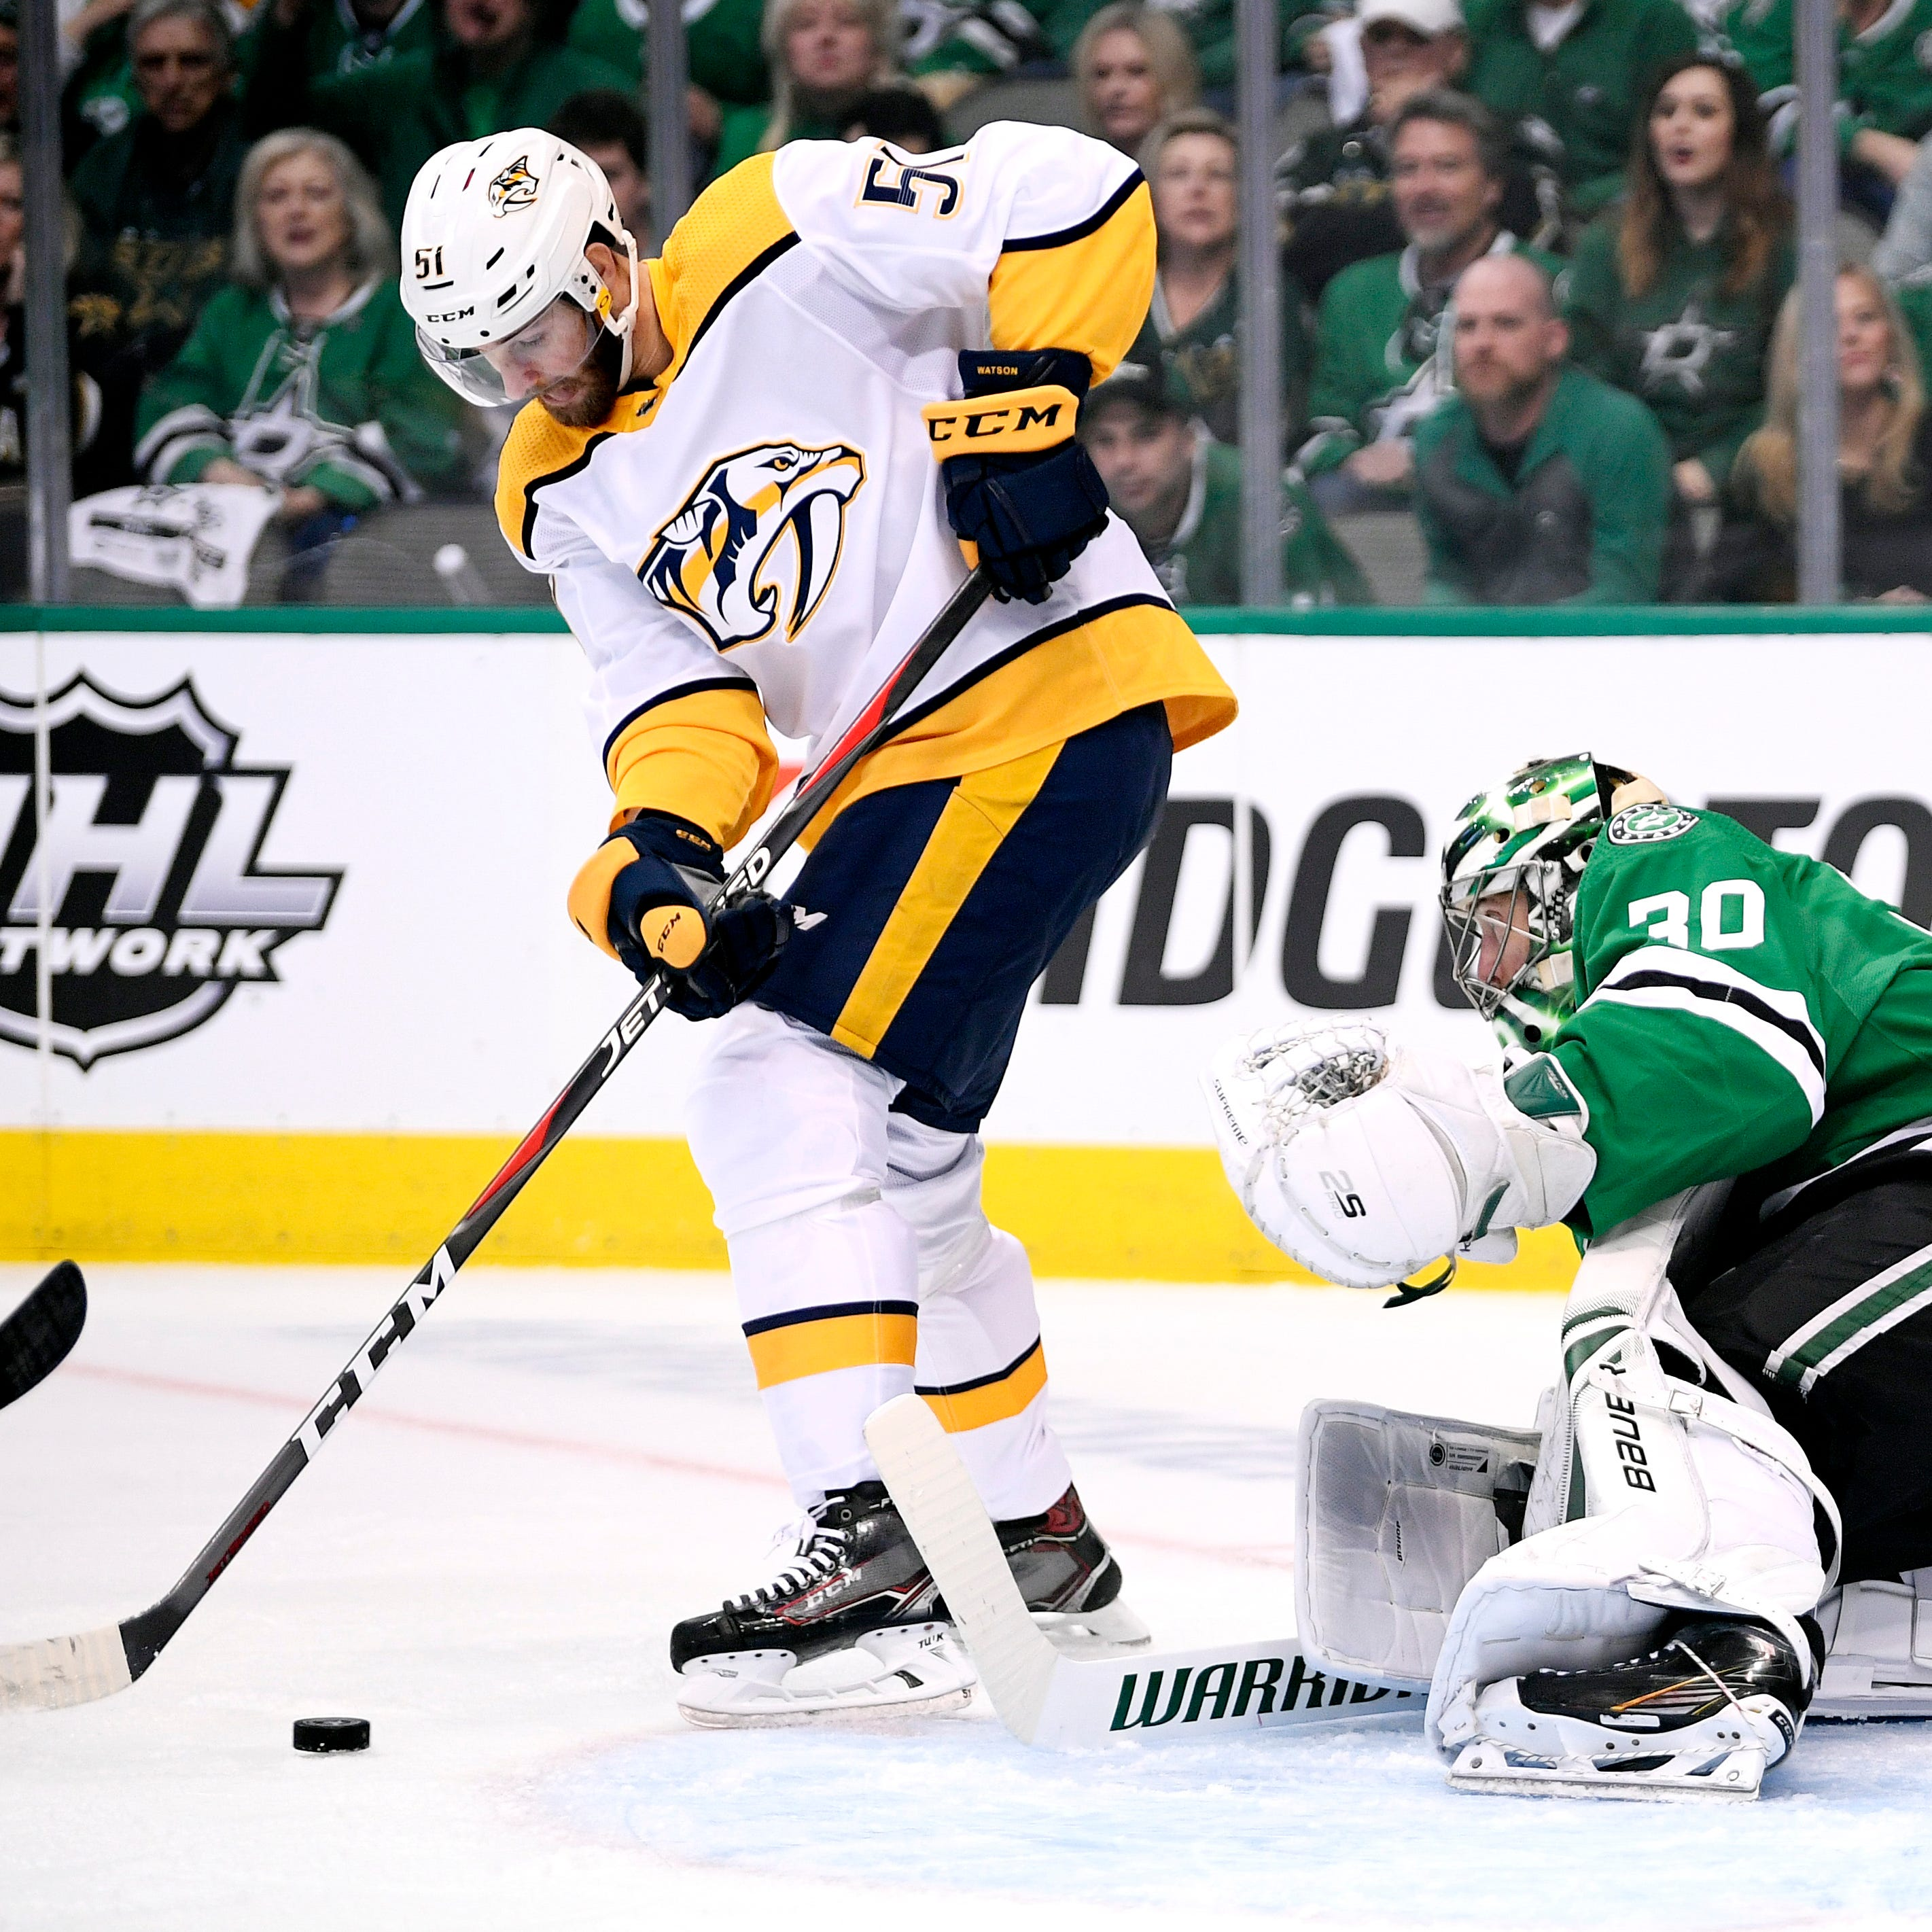 Dallas Stars fan ejected: Austin Watson, NHL not saying much about what led to Game 3 move